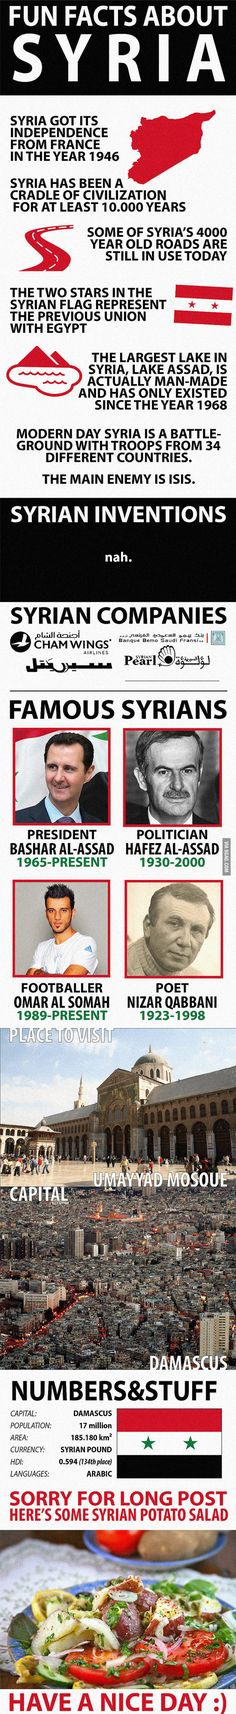 Fun Facts about Syria